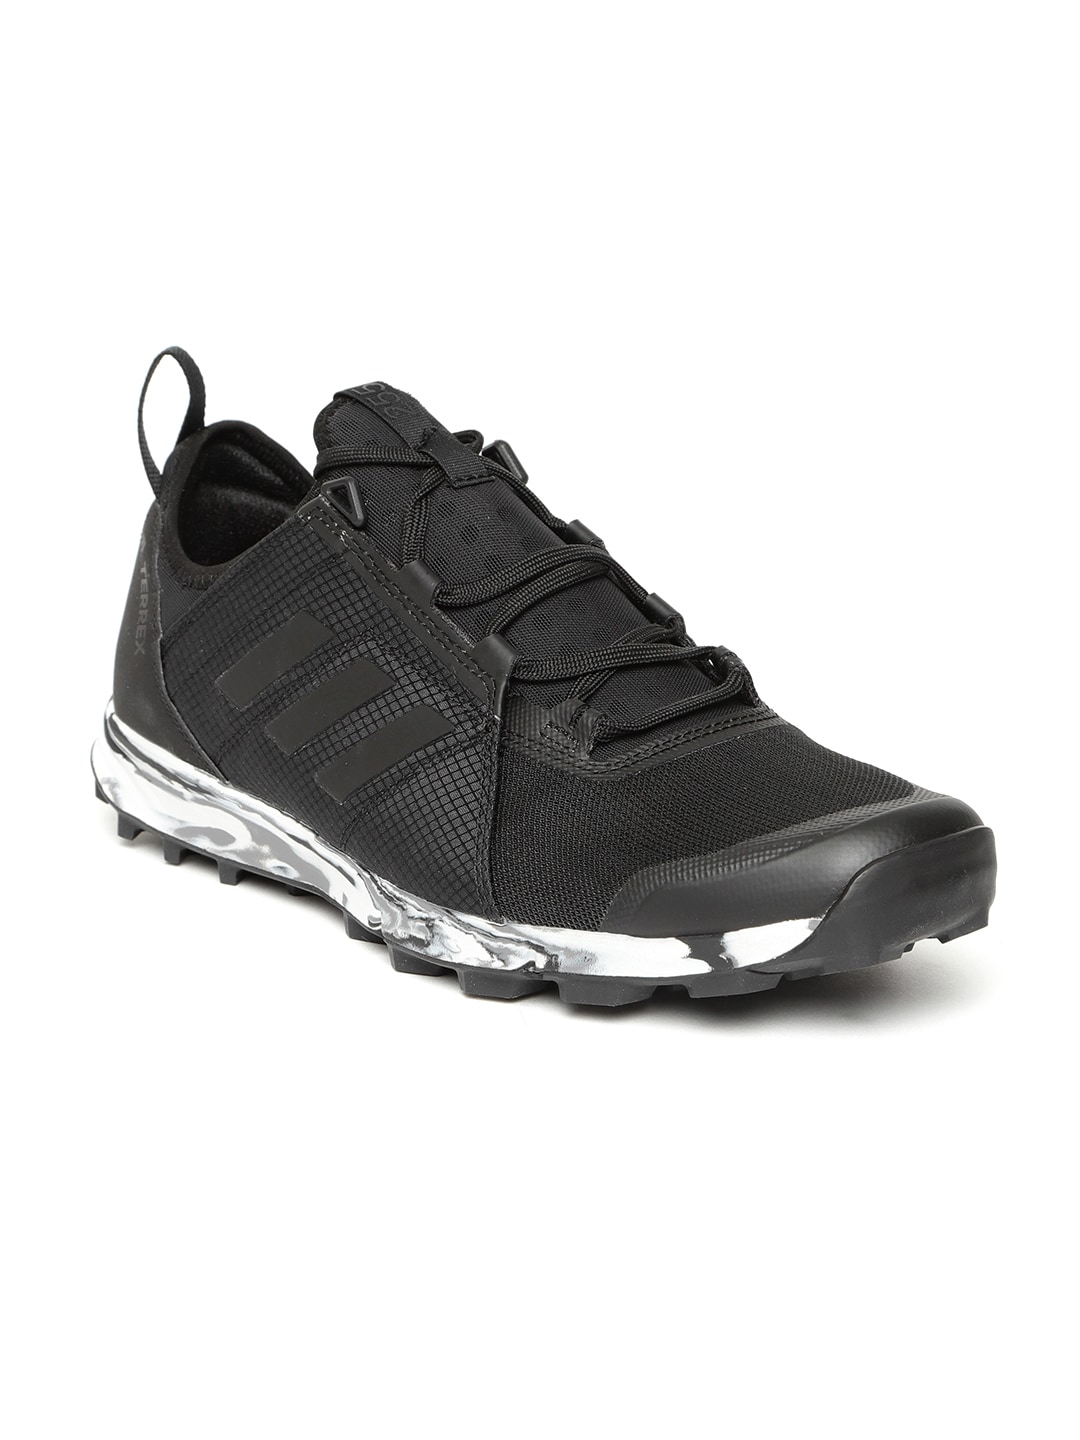 buy popular d5a02 da21f Adidas Shoes - Buy Adidas Shoes for Men   Women Online - Myntra